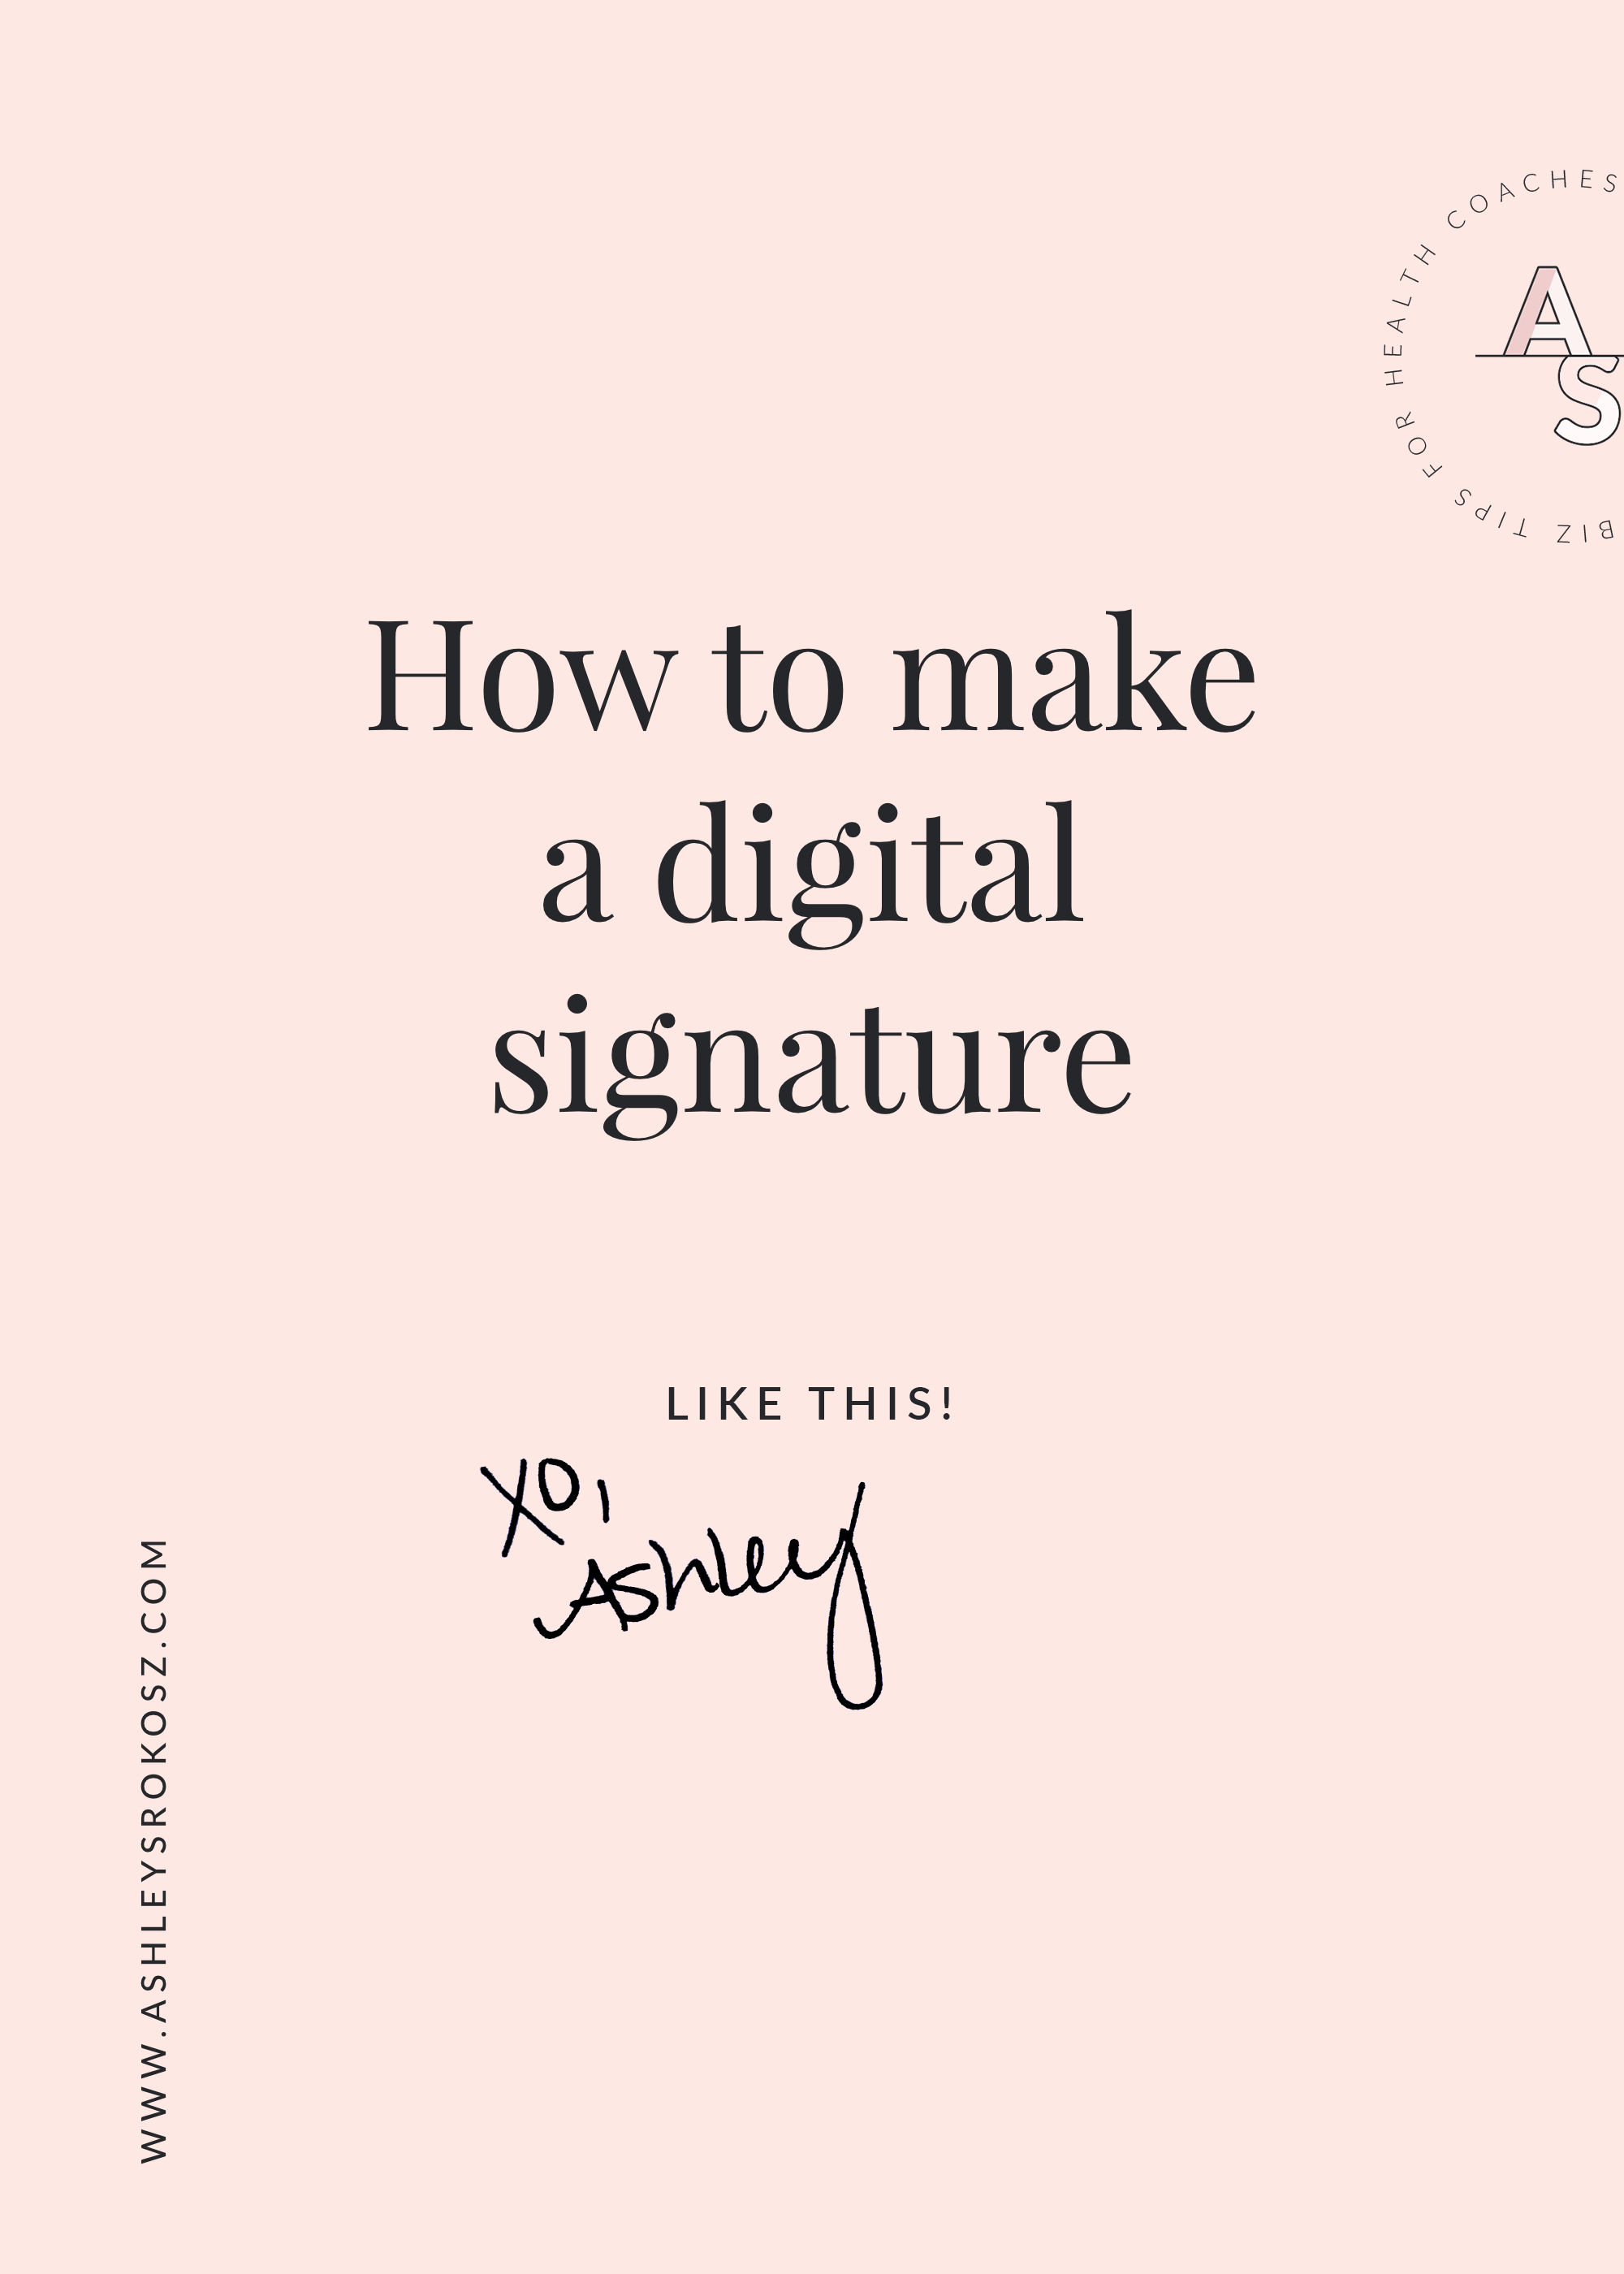 Have you wondered how to make a digital signature like what you see on websites and at the bottom of email newsletters? Click here to see the step-by-step video tutorial showing you how to make a digital signature in less than 5 minutes! This is perfect for holistic nutritionists, health coaches, essential oil business owners, or yoga teachers.